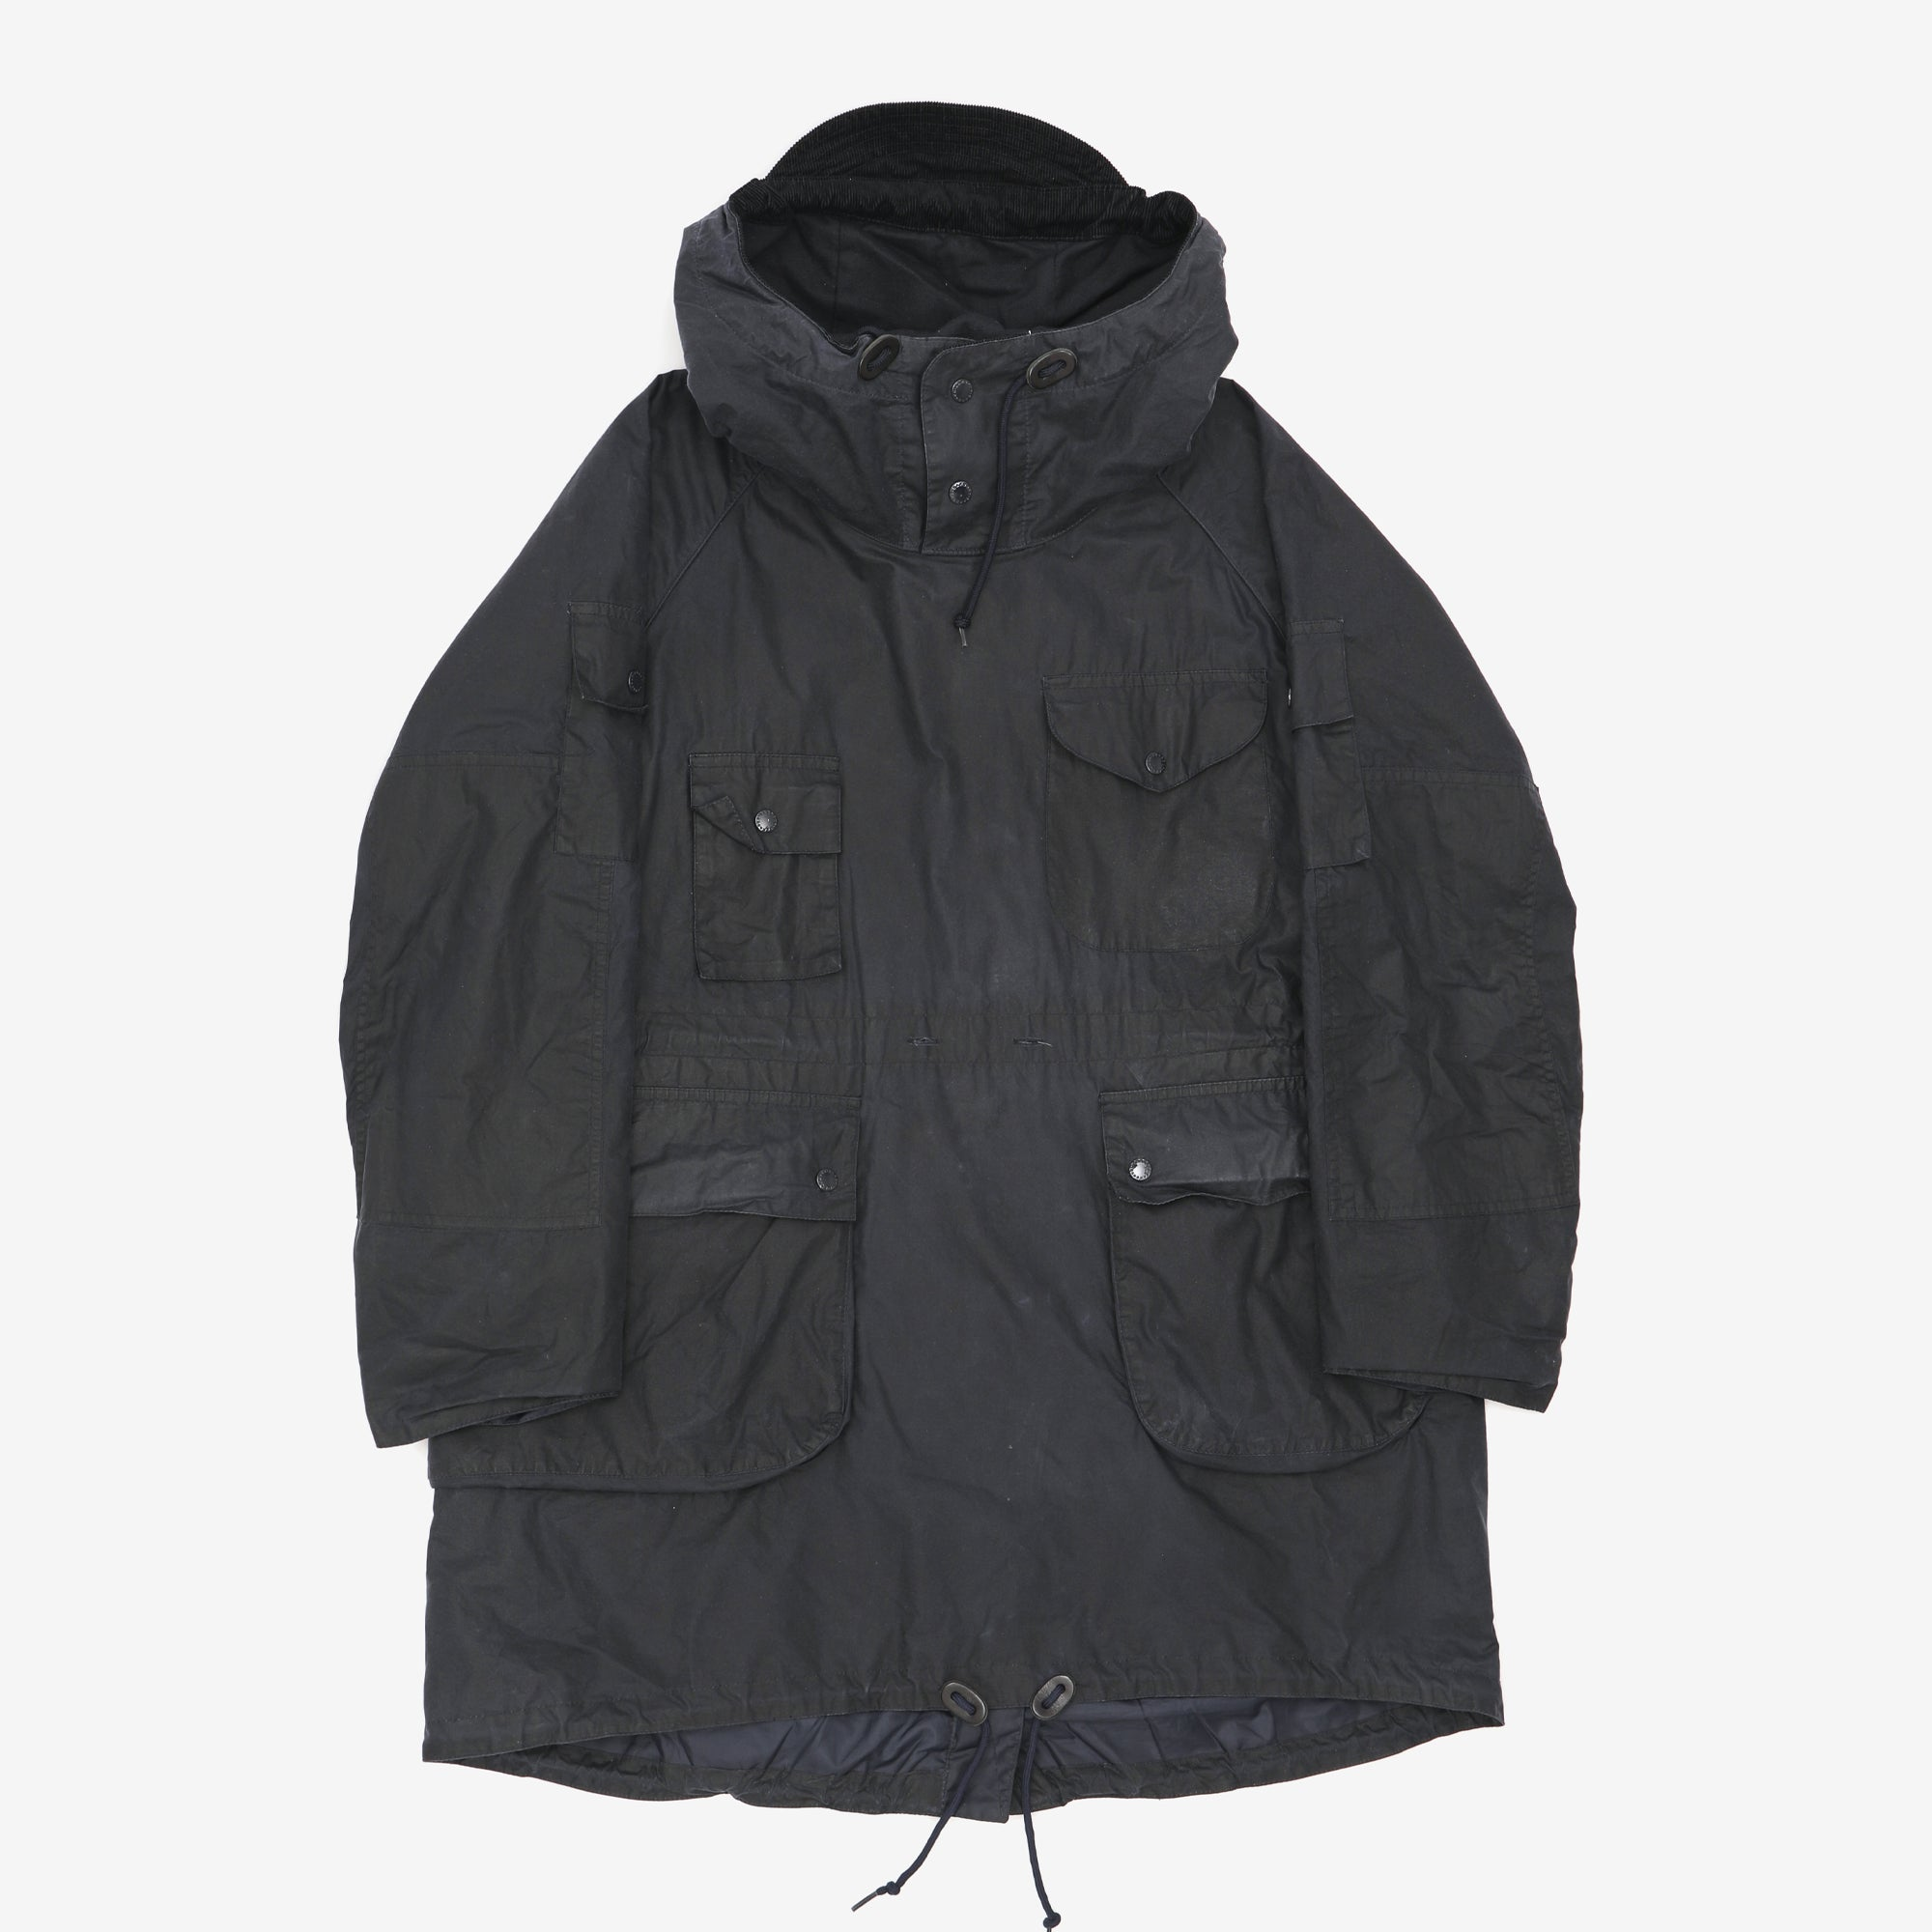 Barbour x Engineered Garments